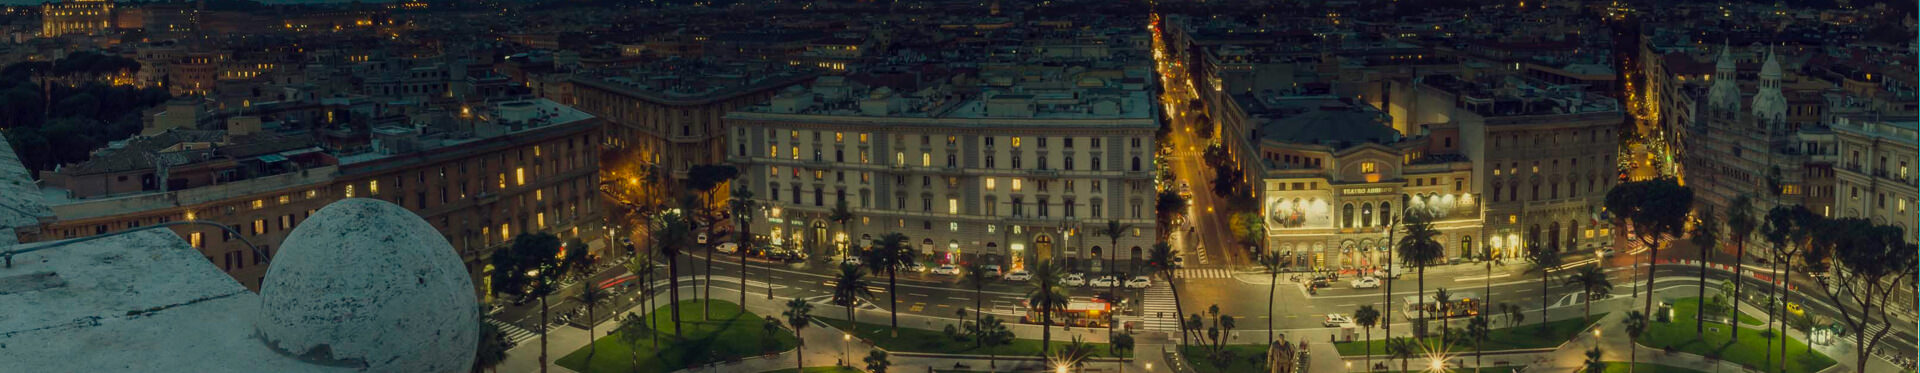 Acea contacts public lighting in Rome and free phone number